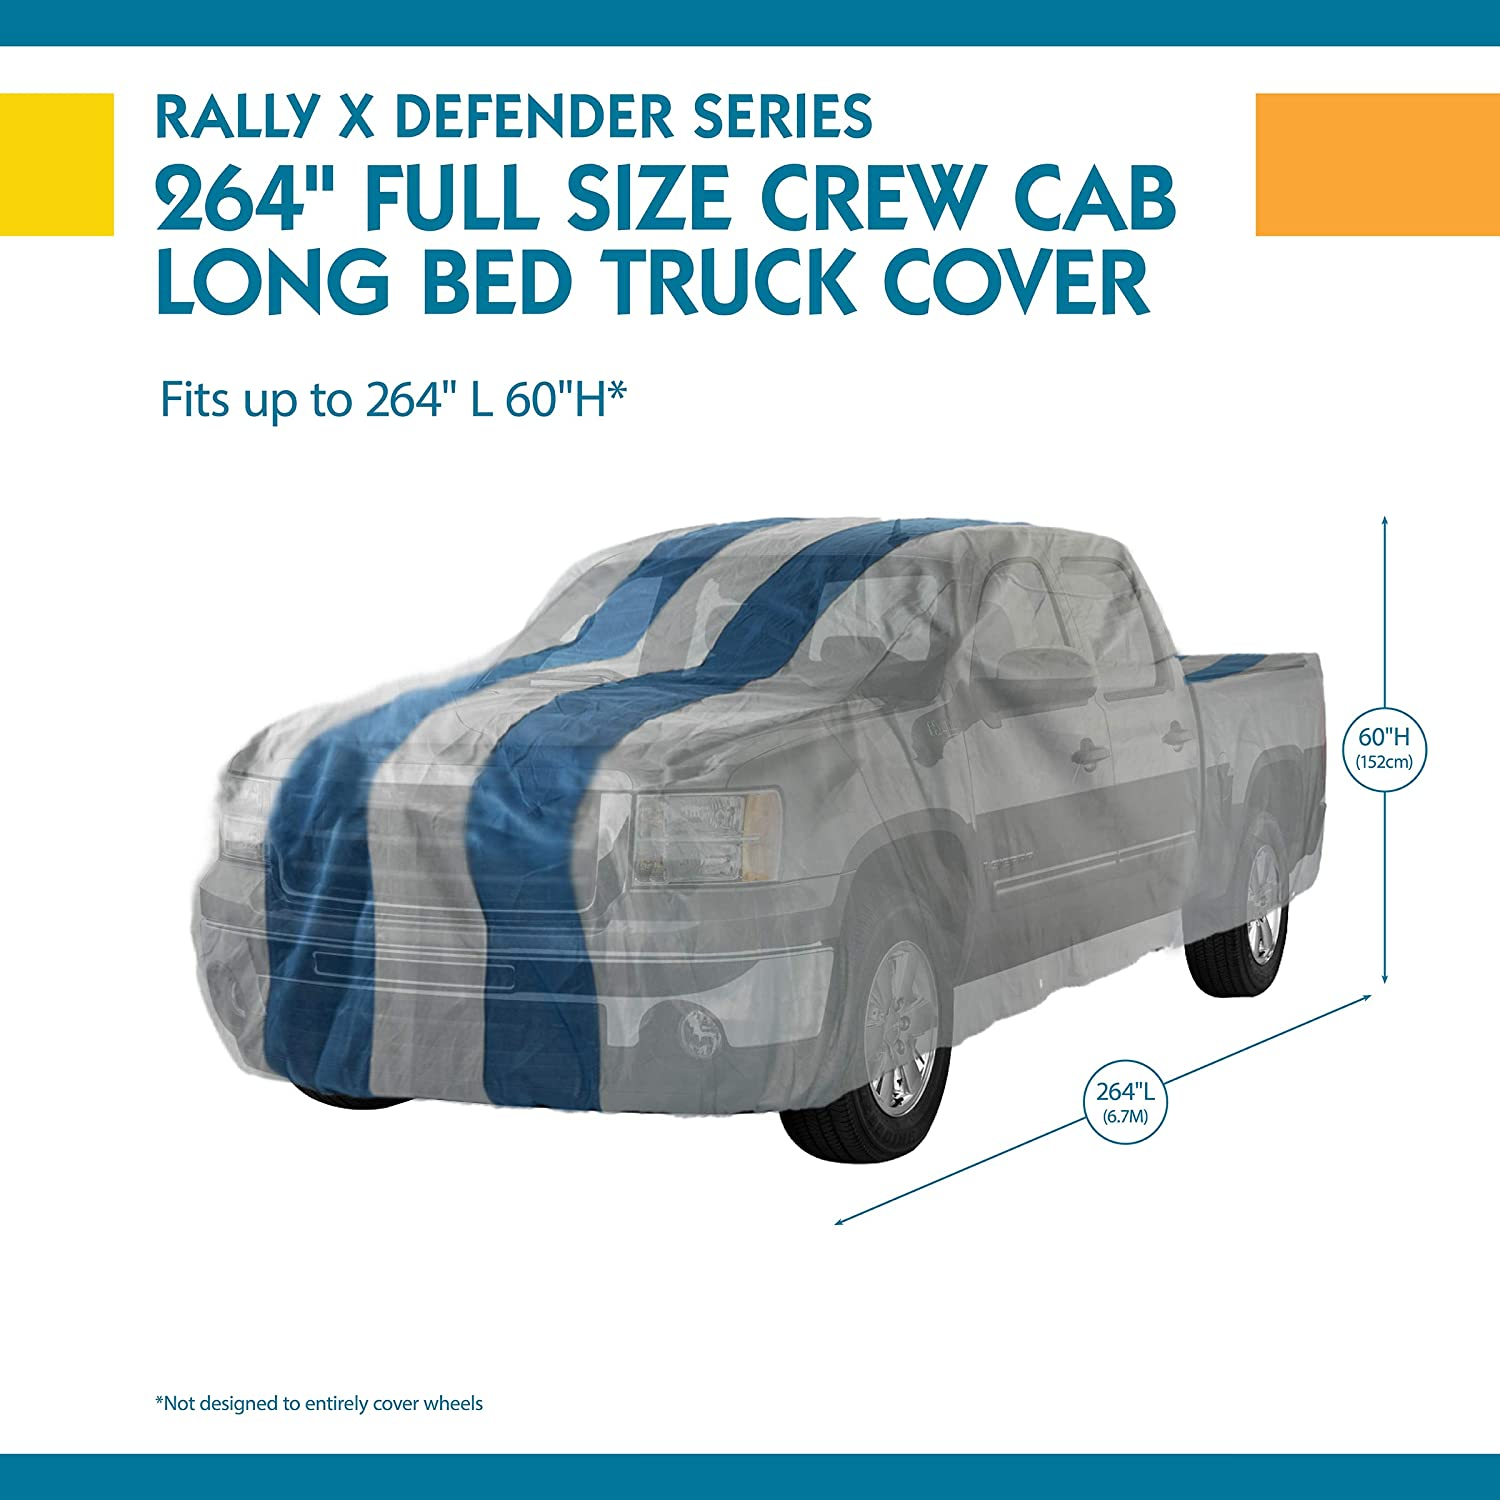 Duck Covers A4T197 Rally X Defender Grey with Navy Blue Rally Stripes 197L x 60W x 48H Pickup Truck Cover 1 Pack Fits Standard Cab Trucks up to 16 ft. 5 in. L